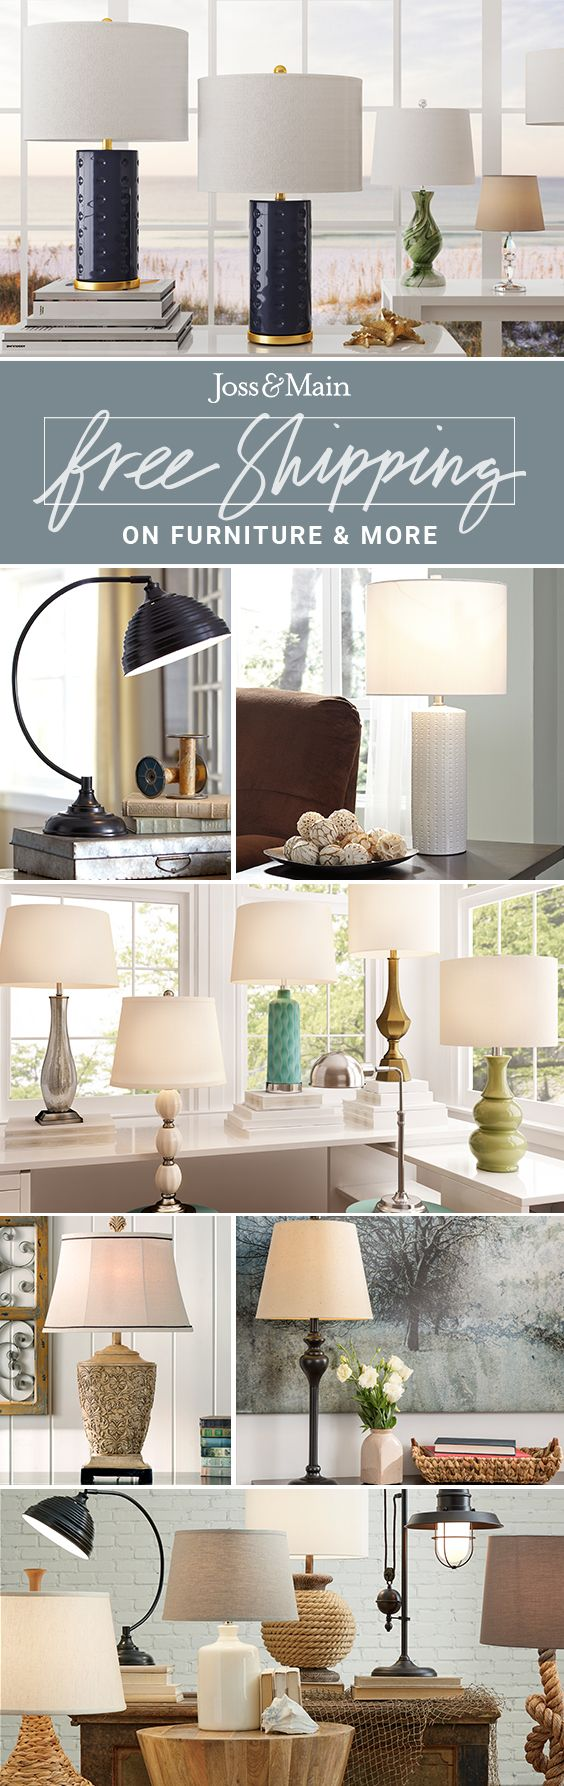 Table lamps at jossandmain.com! Sign up to find out more about FREE SHIPPING on all orders over $49!